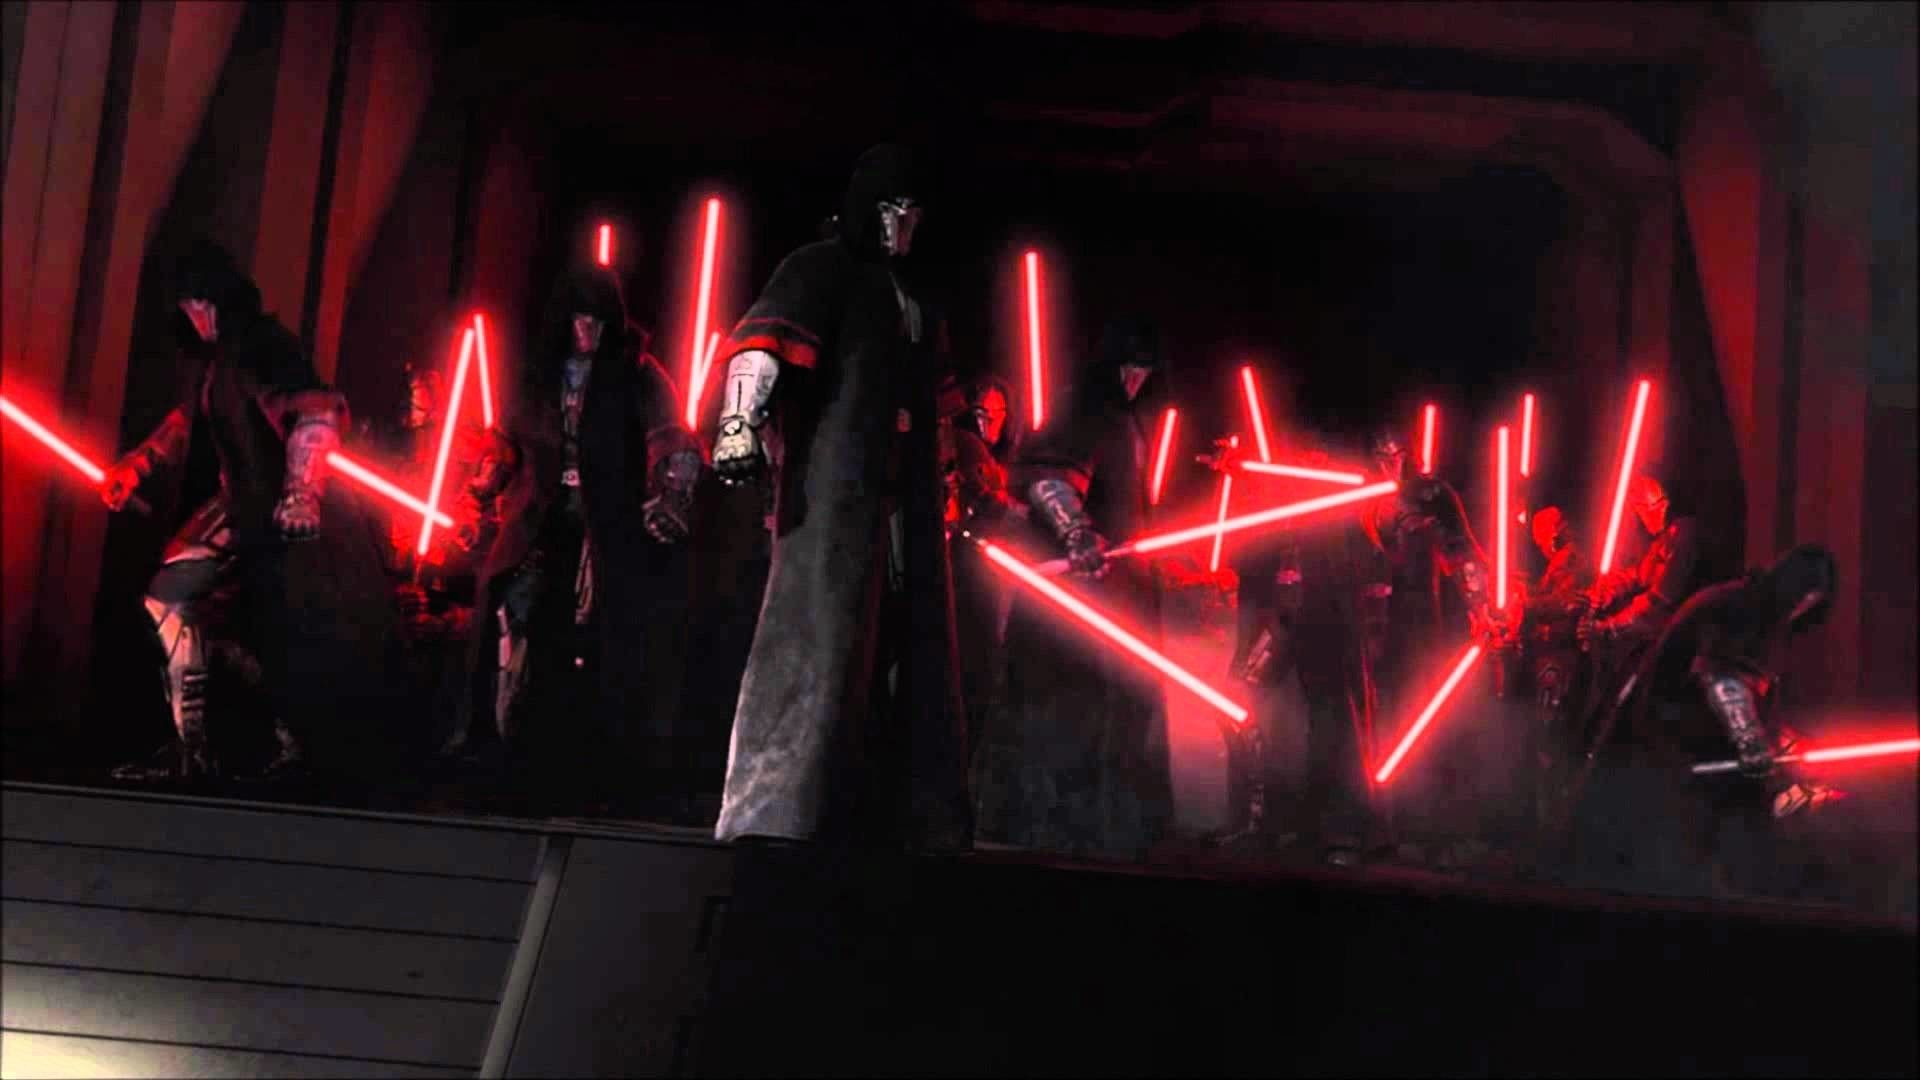 Star Wars Sith Wallpaper 1920x1080 Hd